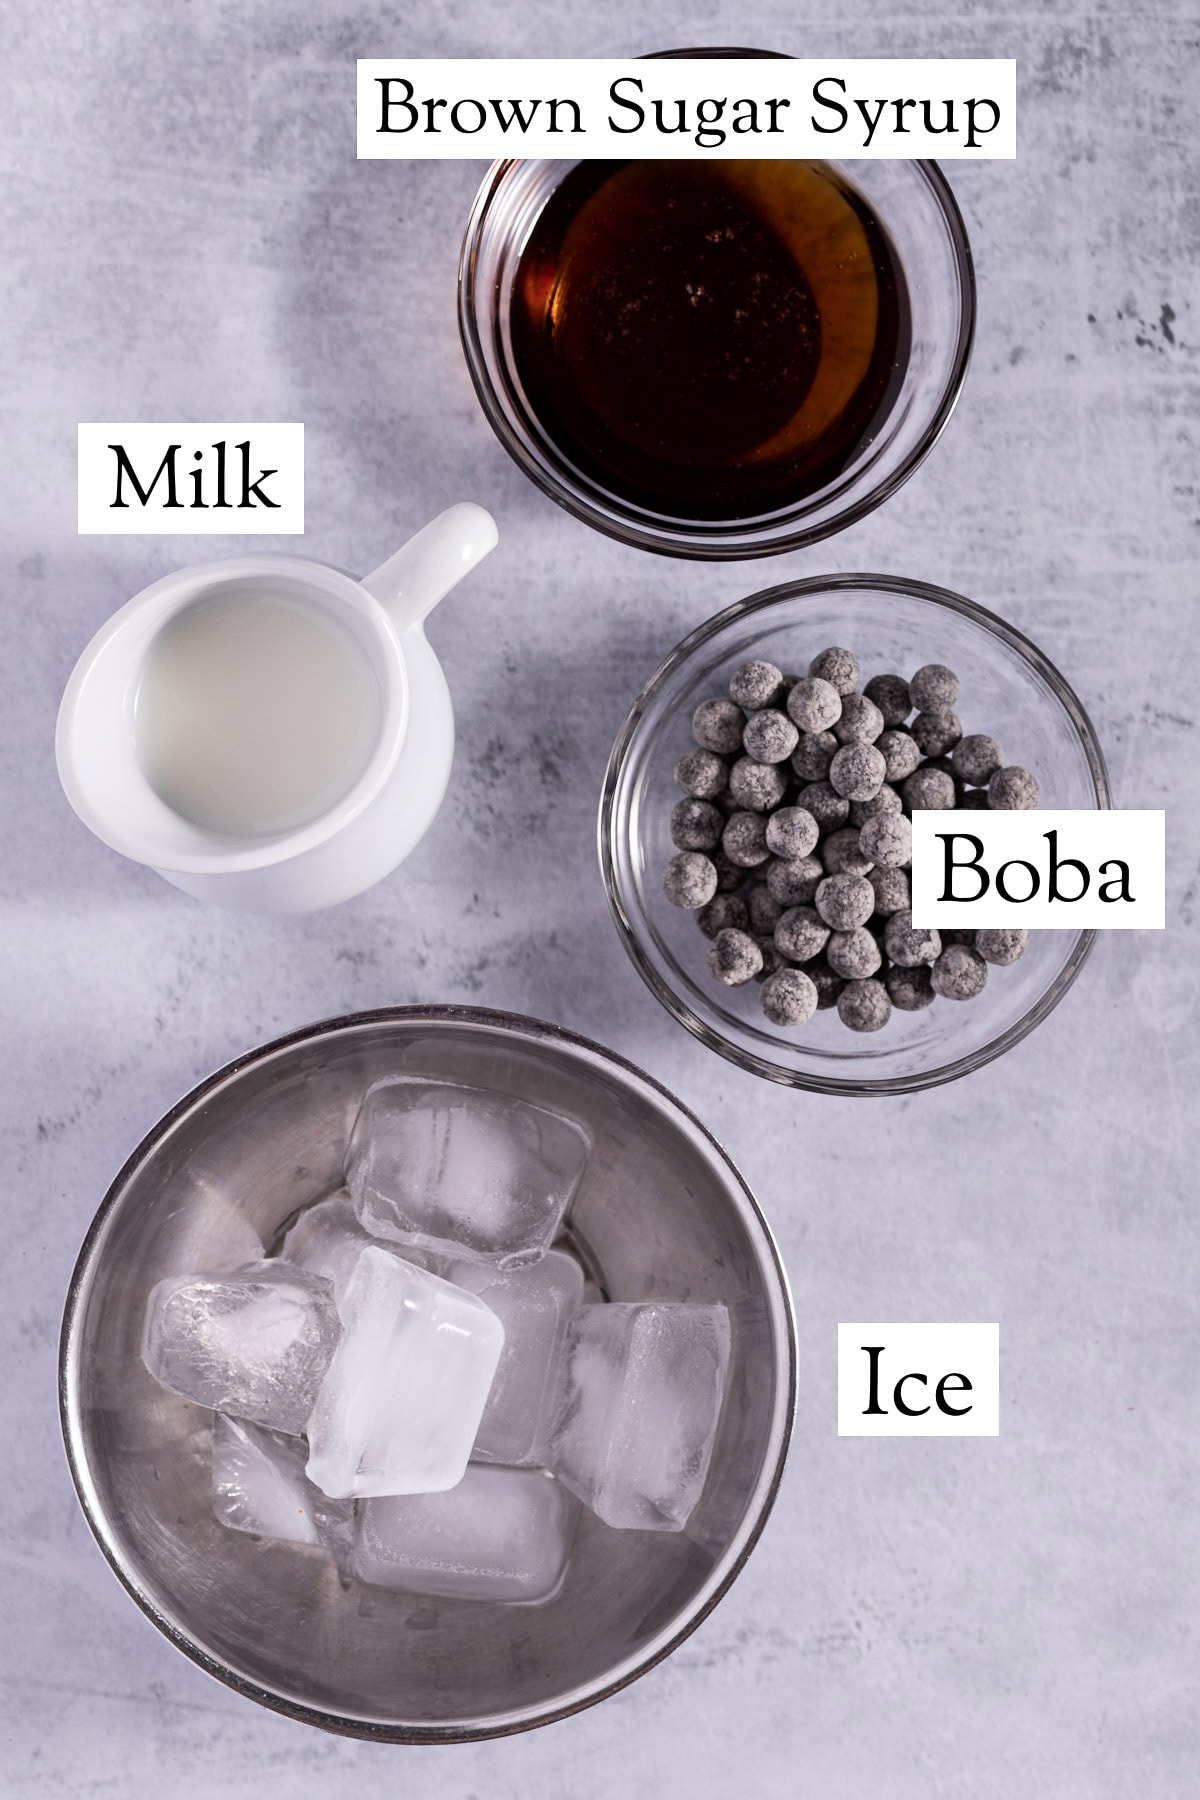 The ingredients needed to make this bubble tea recipe - ice, boba, milk, and brown sugar syrup.